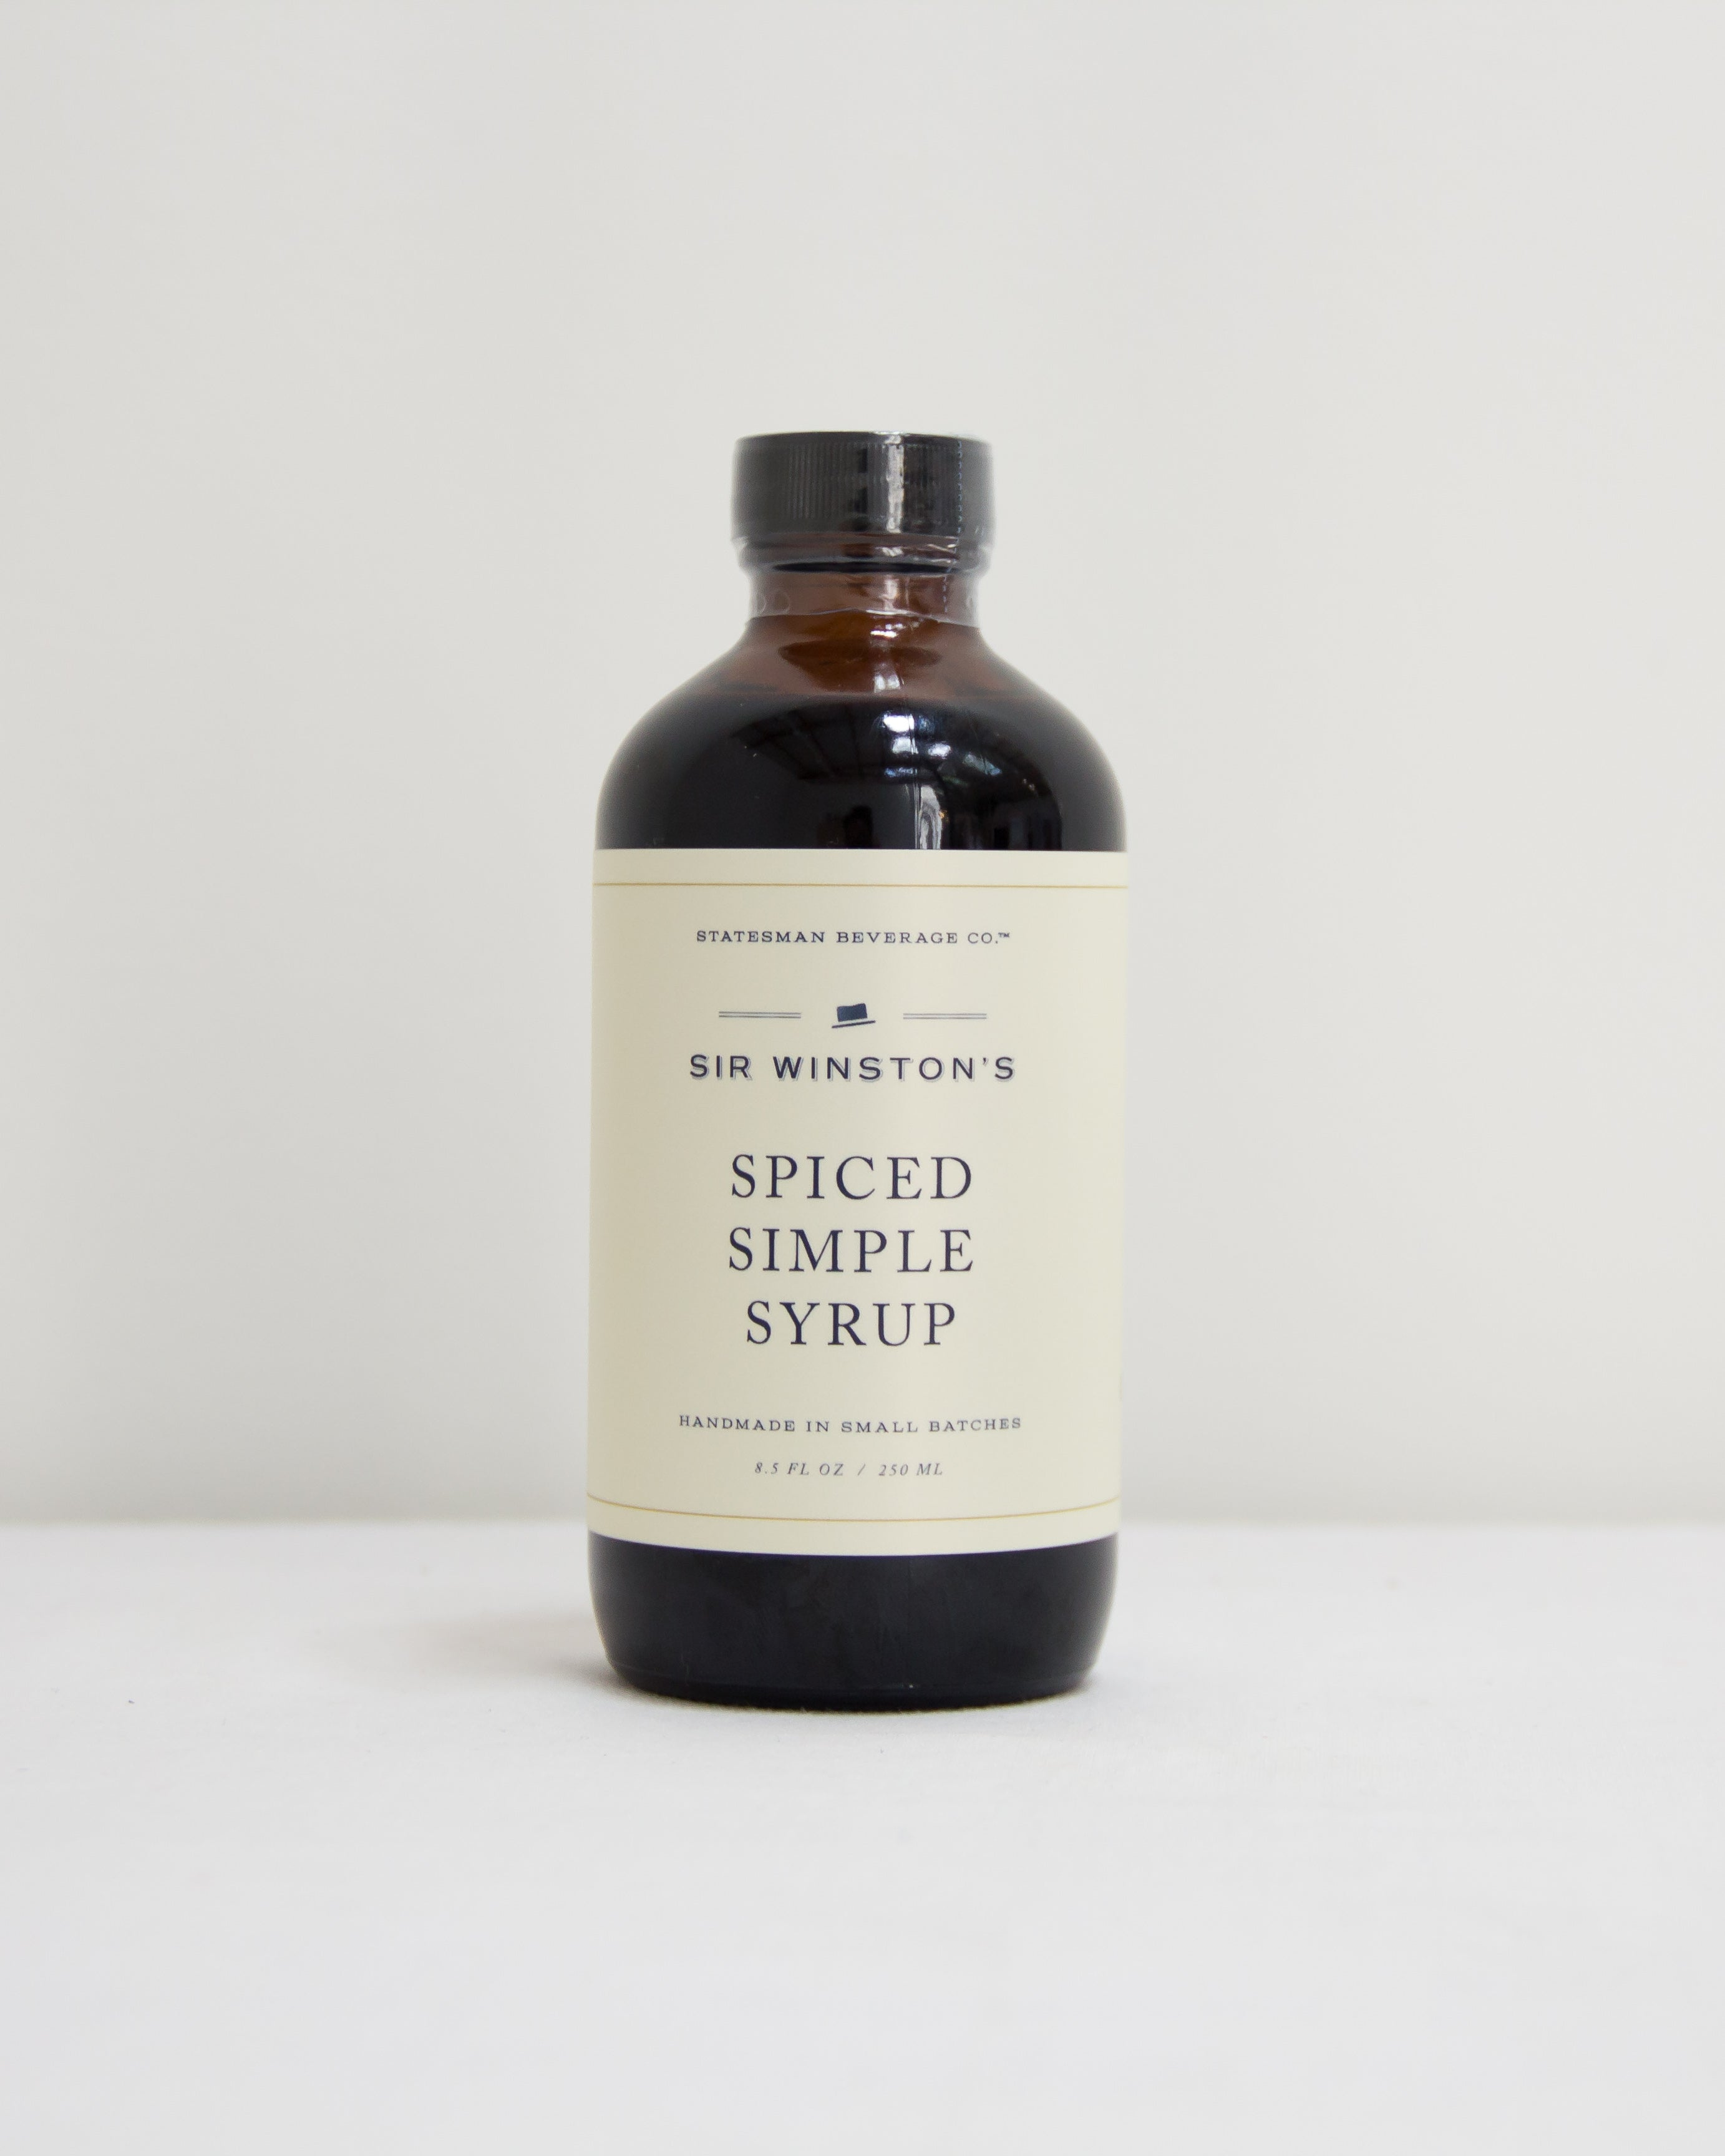 Sir Winstons Spiced Simple Syrup